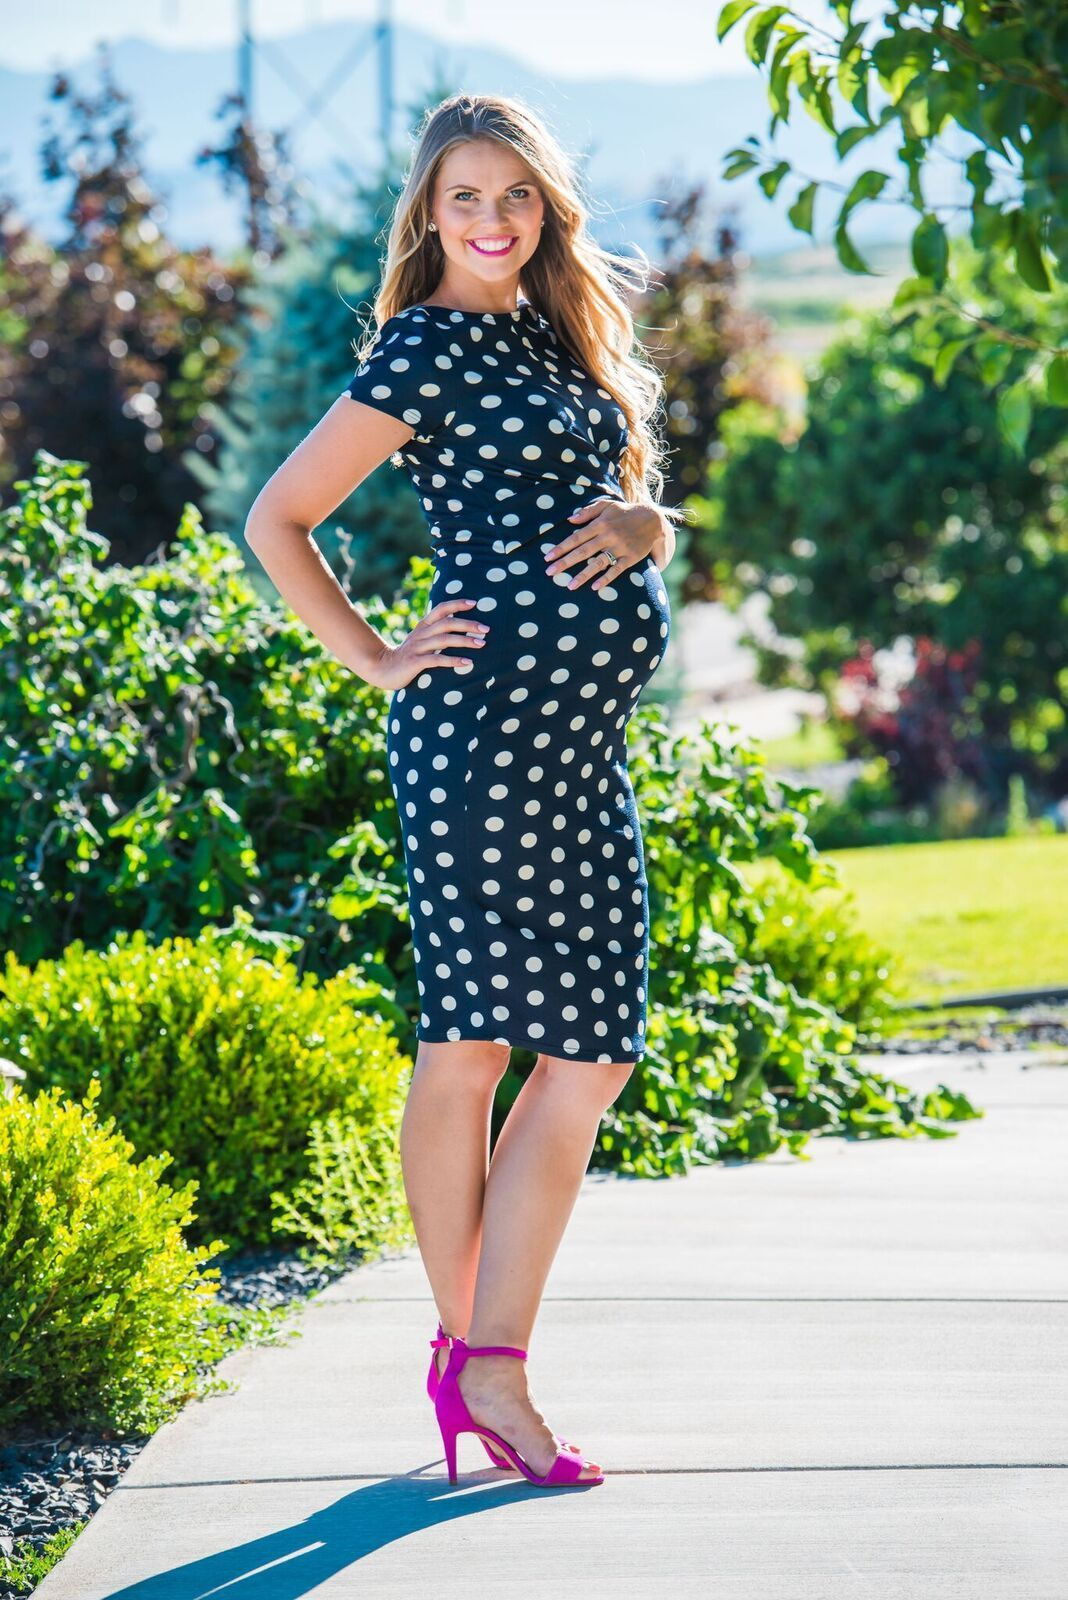 Lauren polka dot maternity dress style pinterest fabrics lauren polka dot maternity dress ombrellifo Image collections